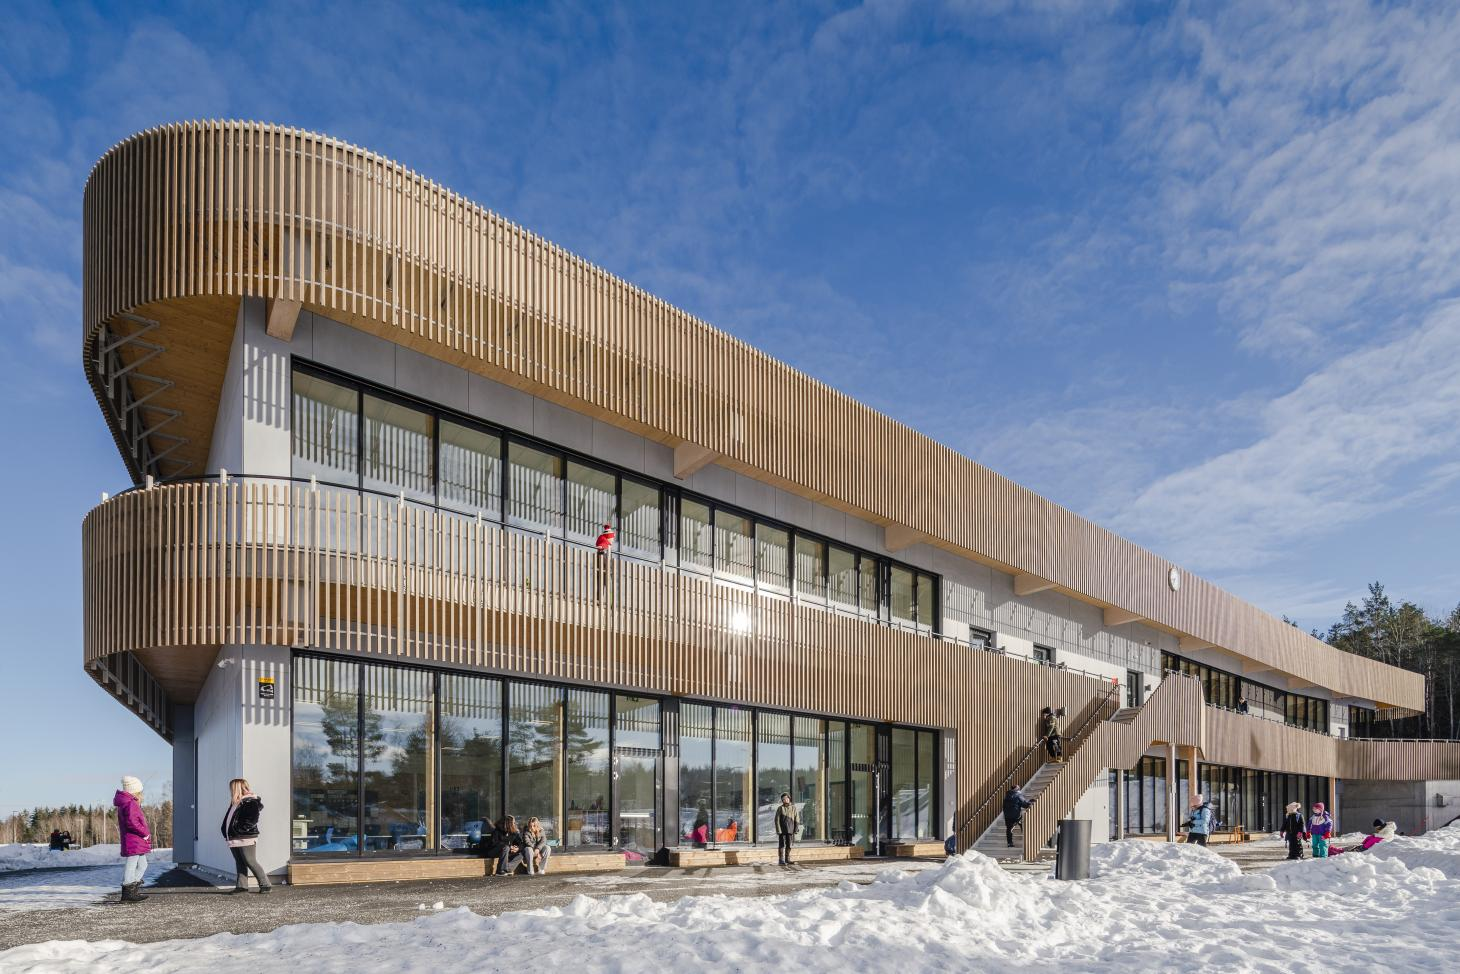 this new sustainable school in Norway features durable kebony wood cladding